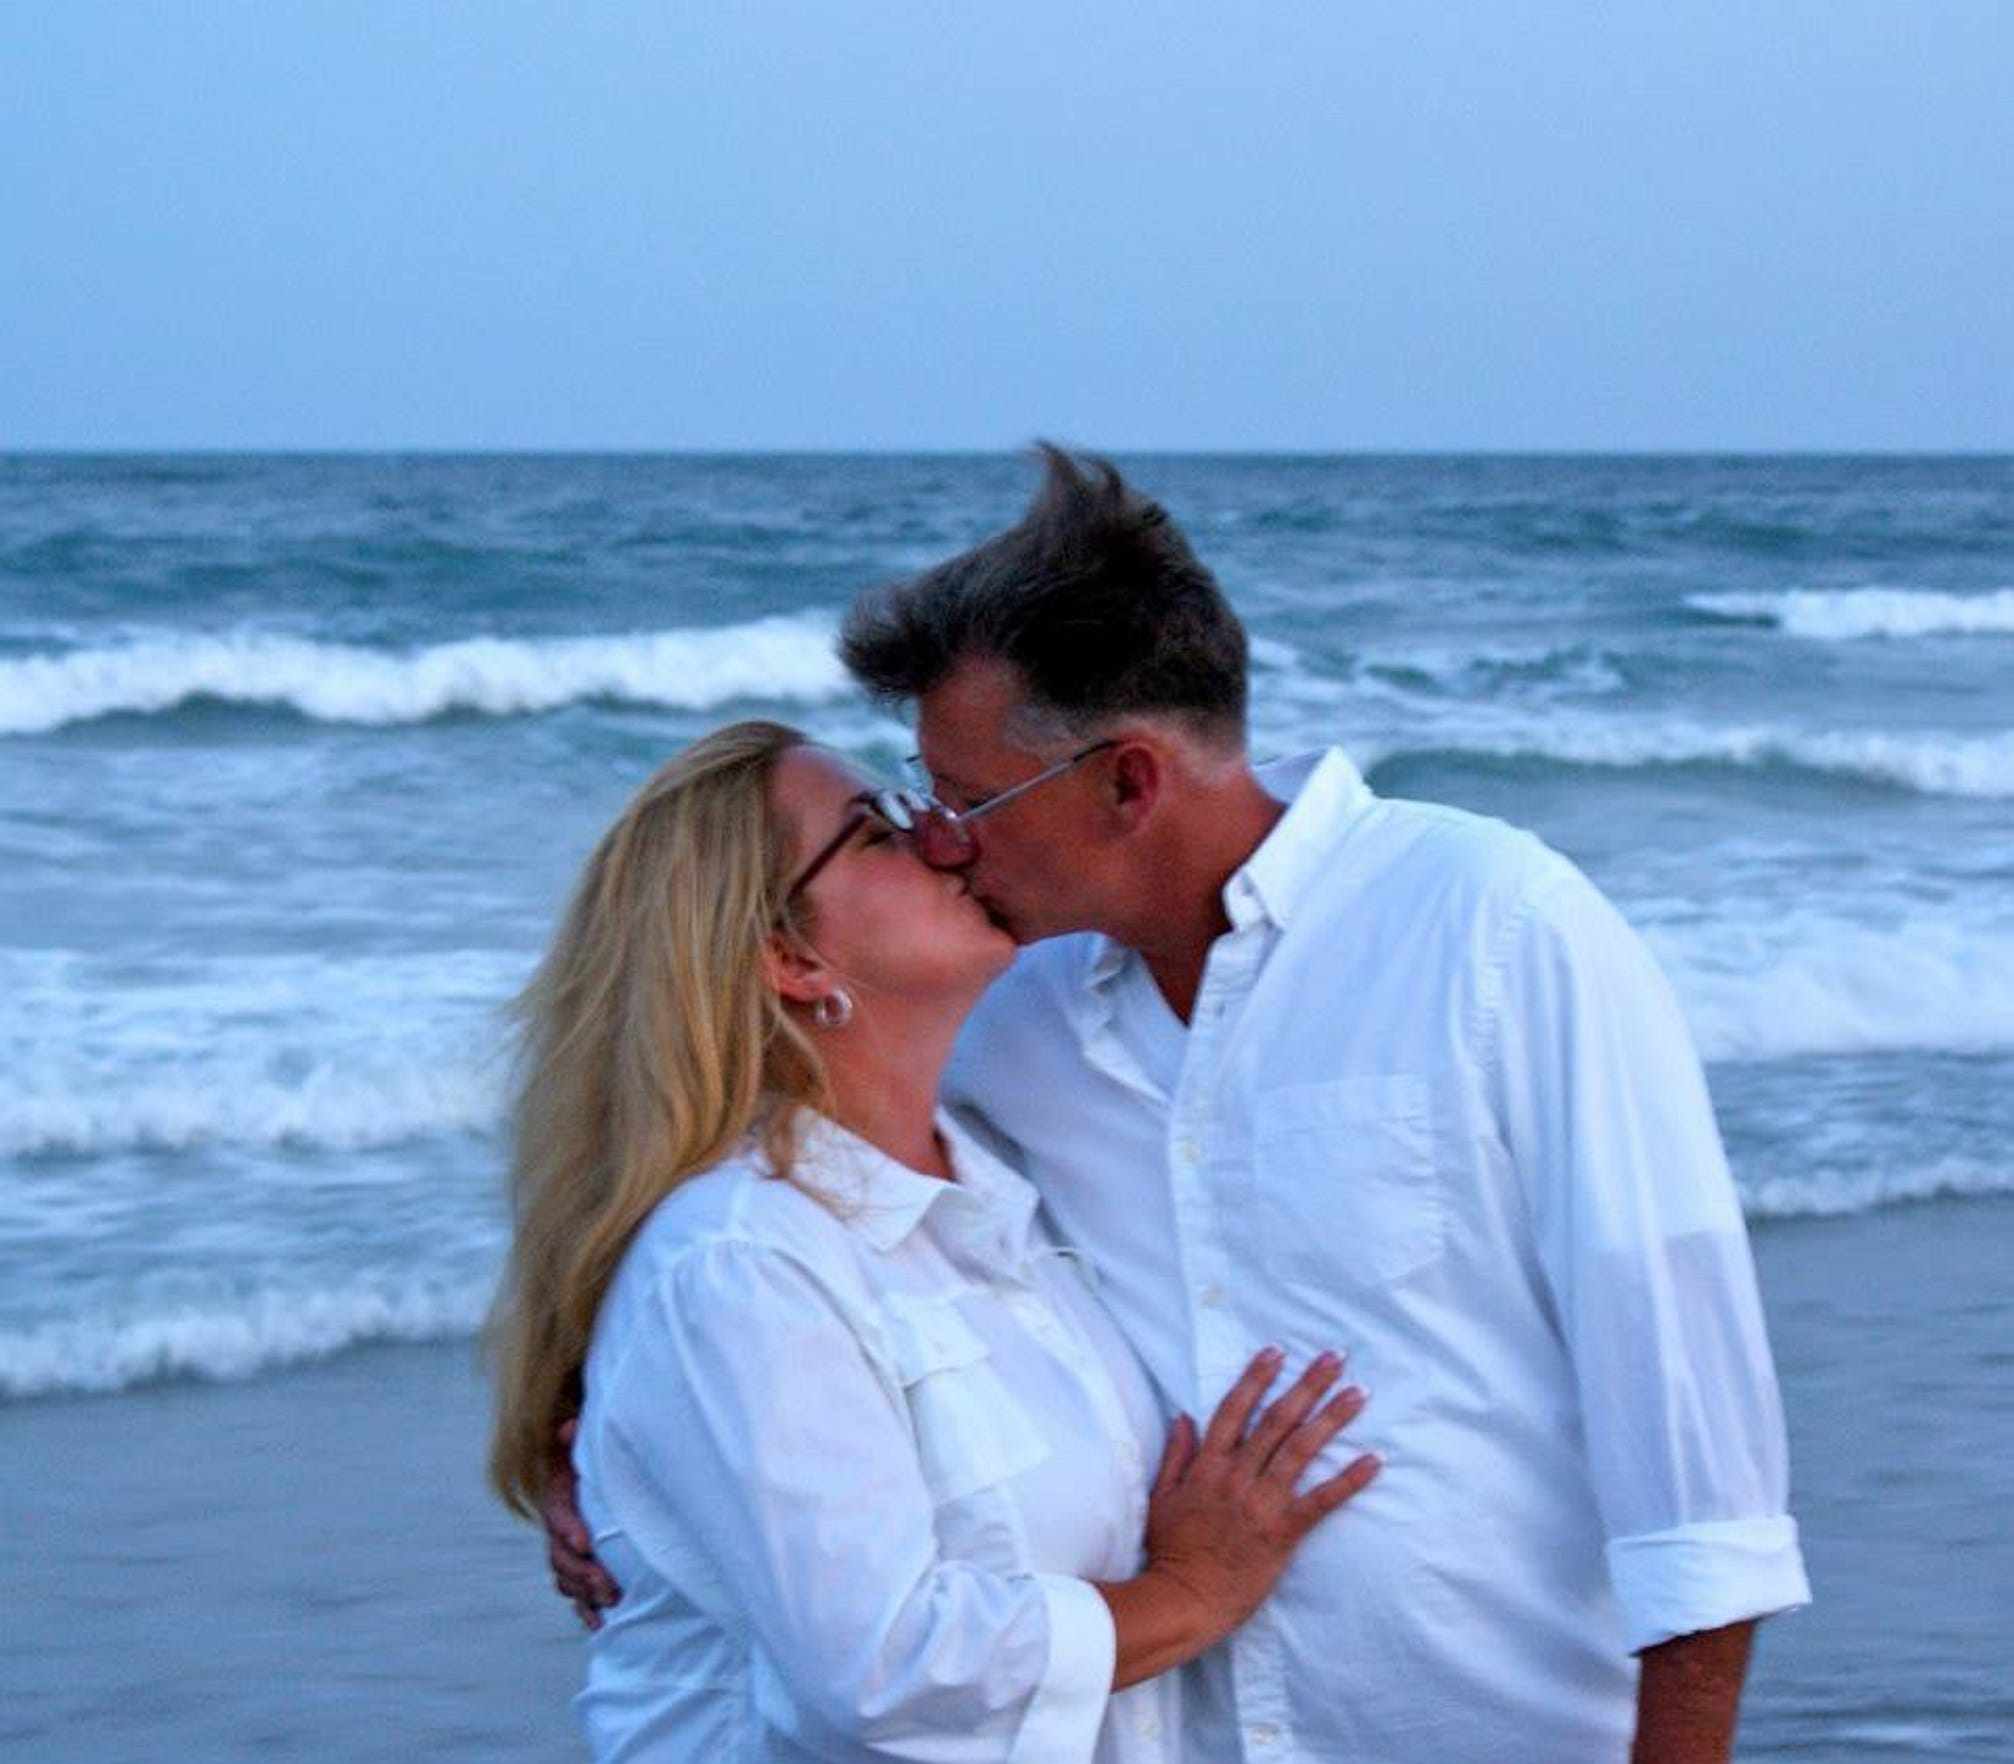 Julie and Fred Pepperman kiss for a photo on the beach during a vacation to Florida in 2018. Fred Pepperman, 53, died on July 14, after swimming out to rescue his daughters from a riptide at the Miramar Beach area.